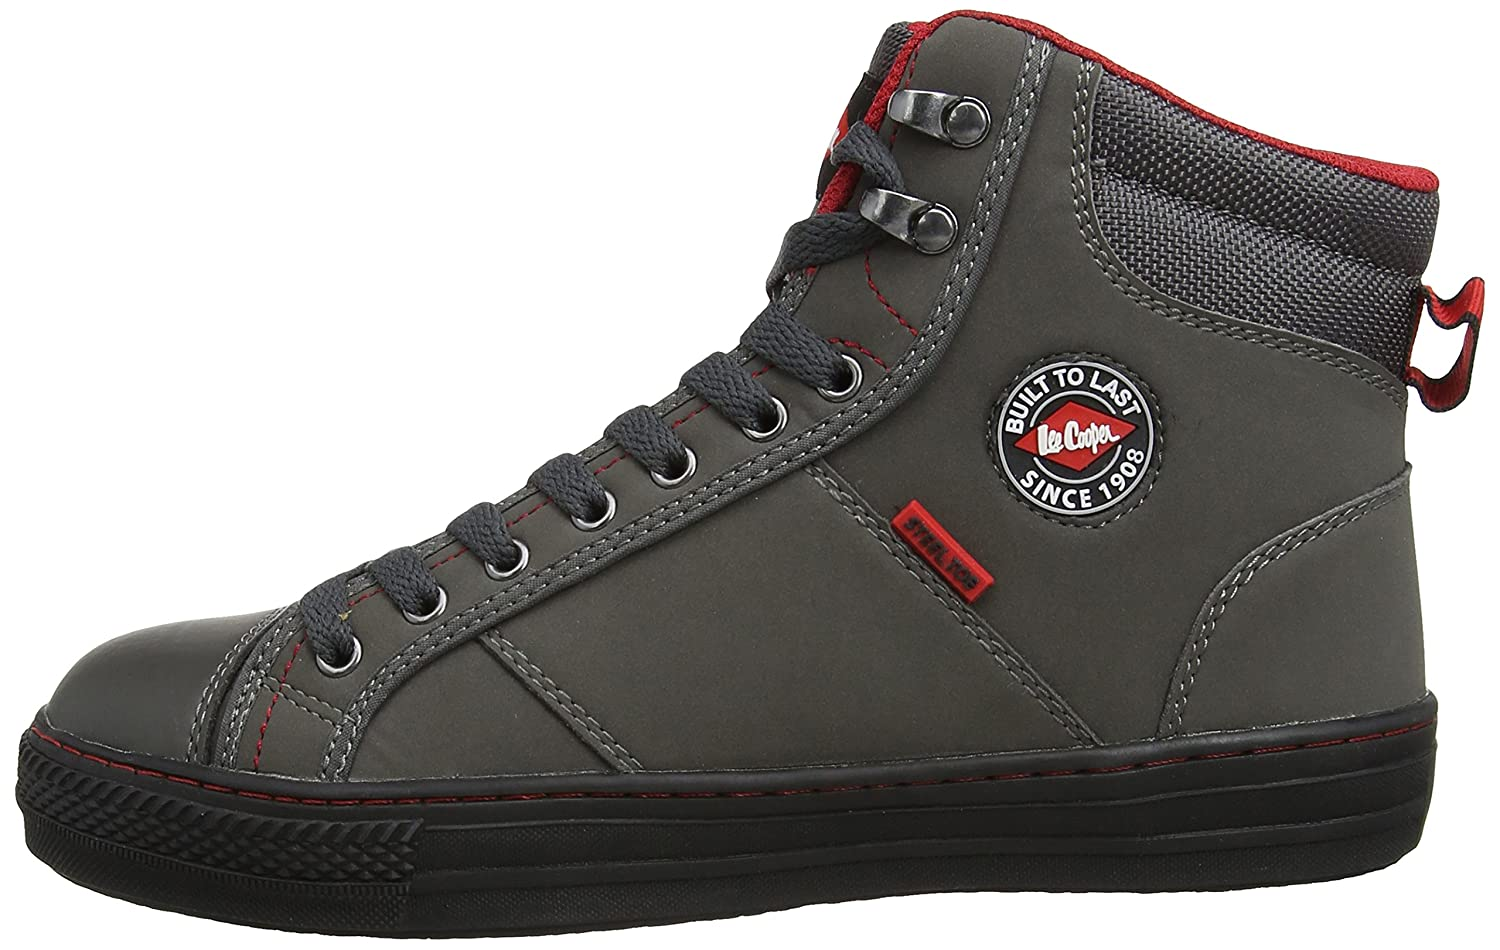 601c2c4cf388 Lee Cooper Workwear Unisex-Adult LCSHOE022 Safety Shoes Grey 3 UK ...